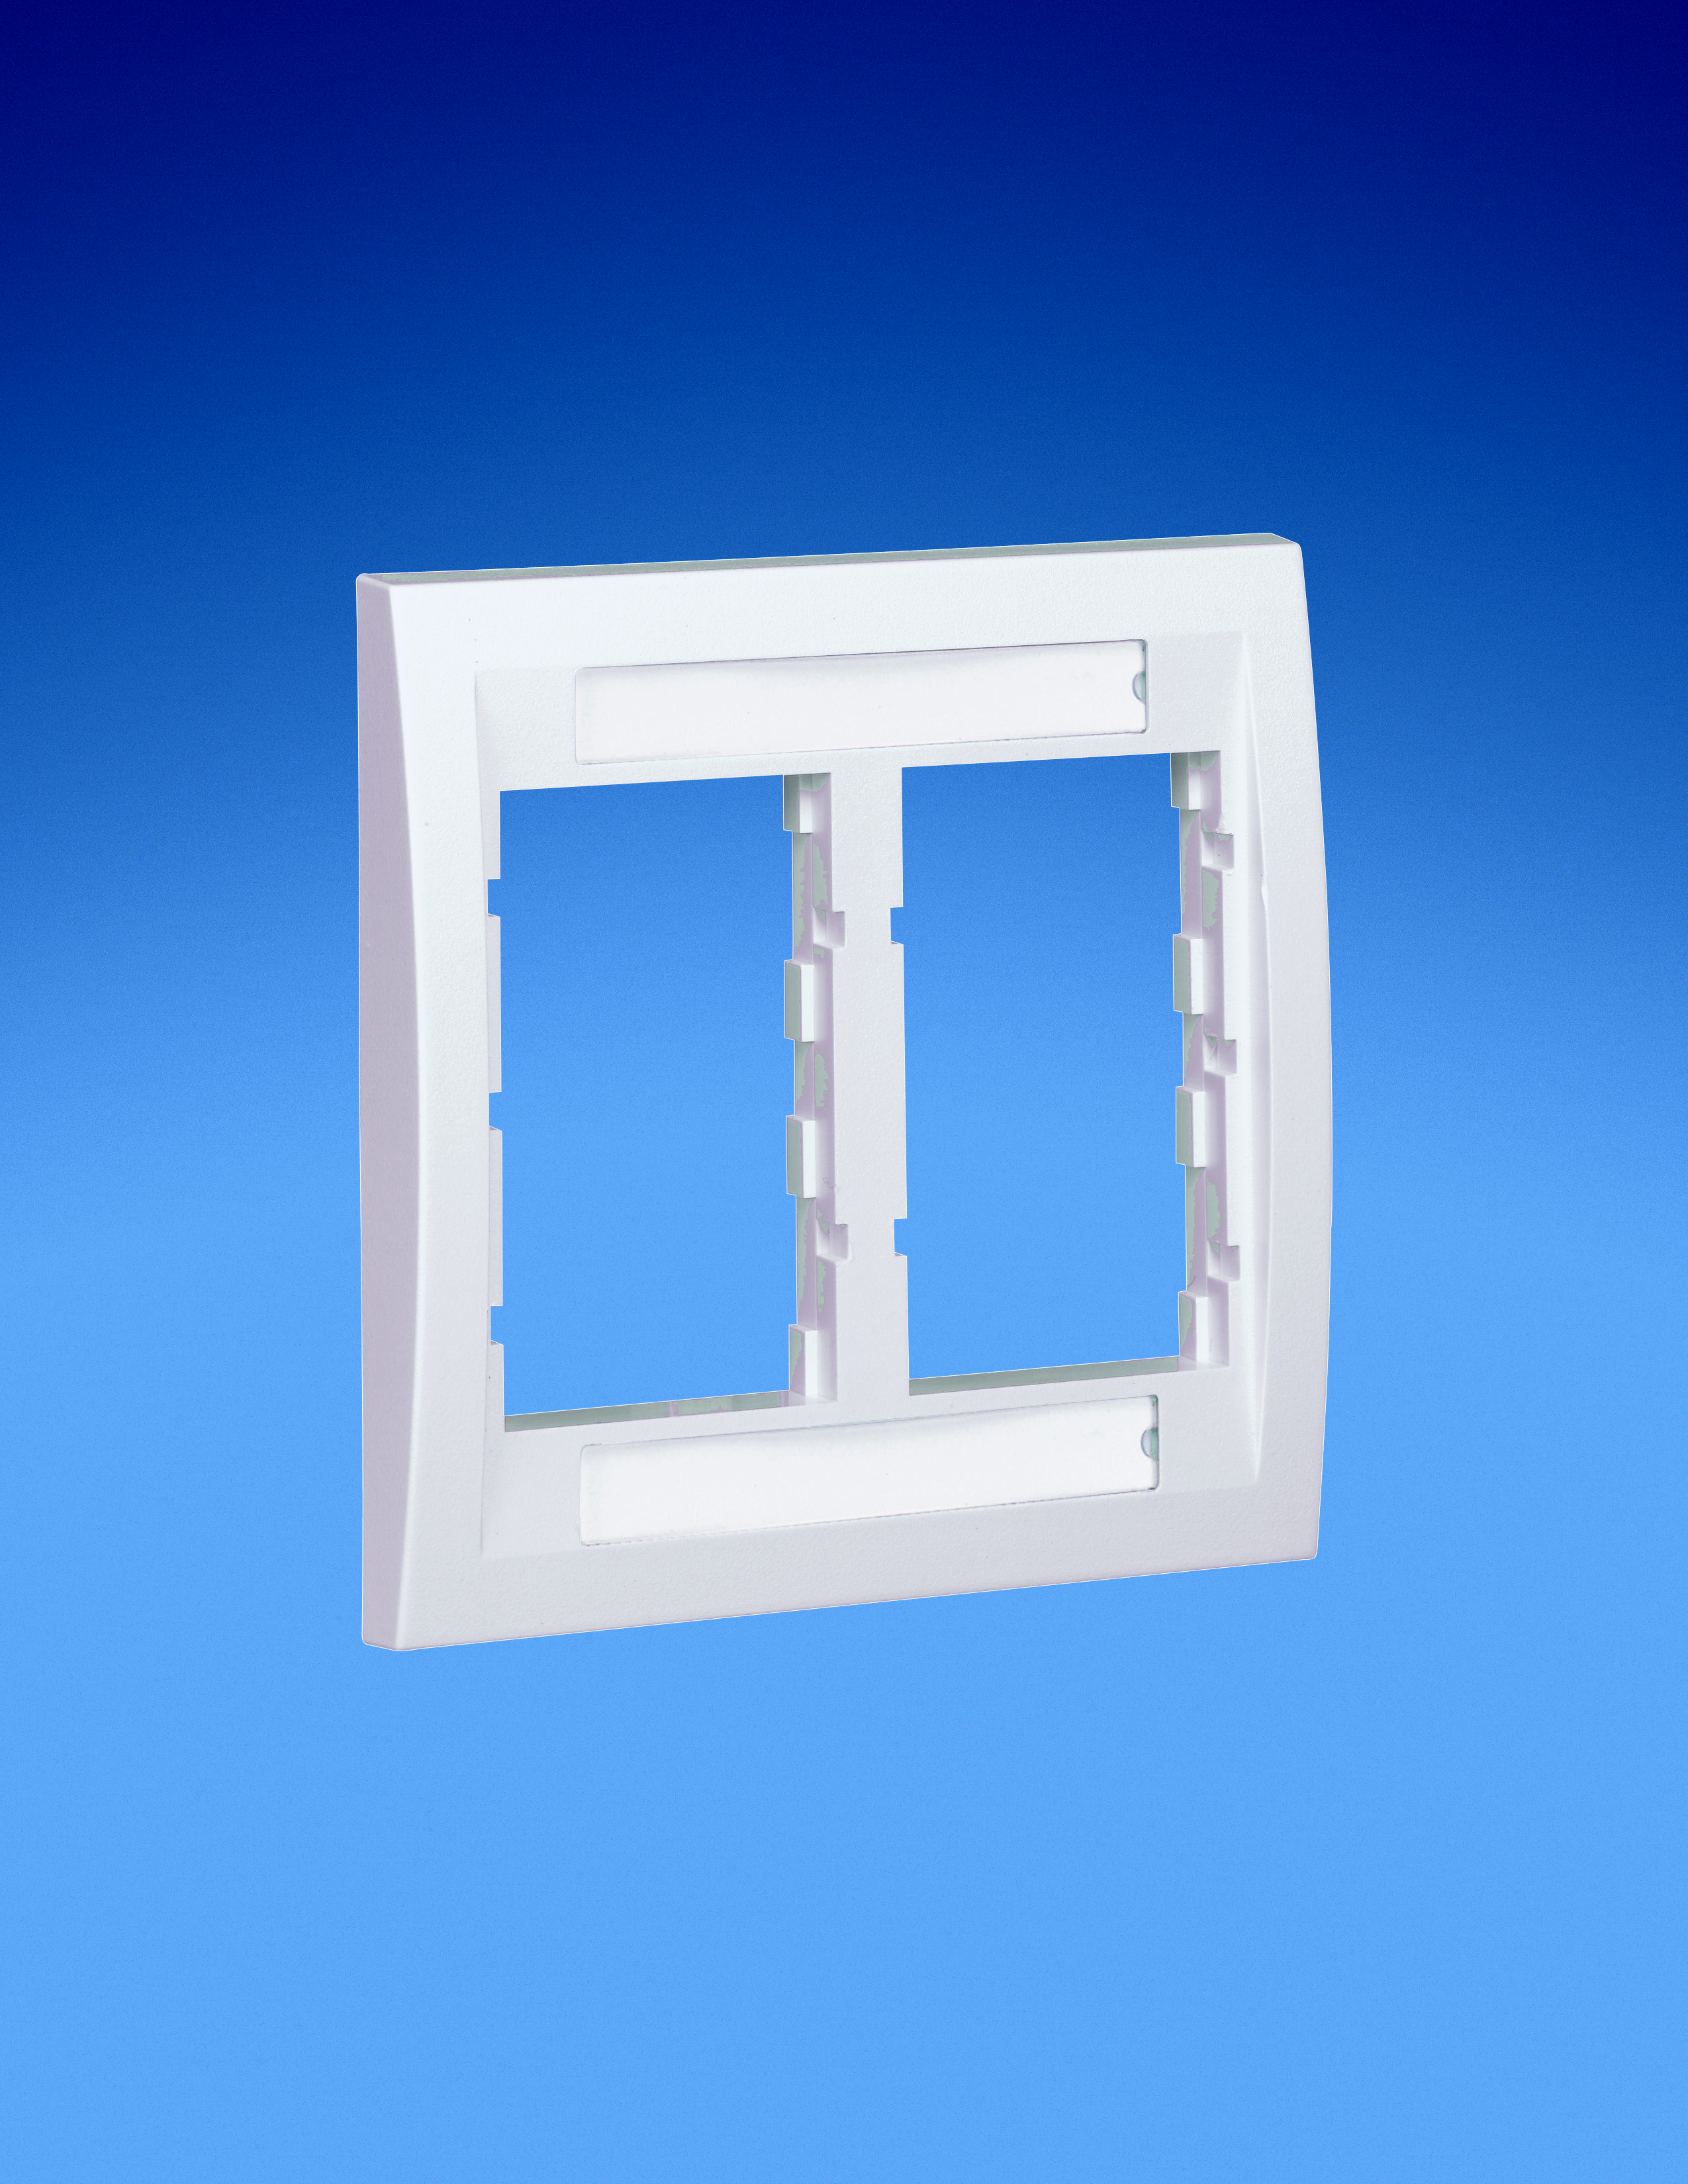 Mayer-Faceplate Frame, Double Gang, Executive, Electric Ivory-1